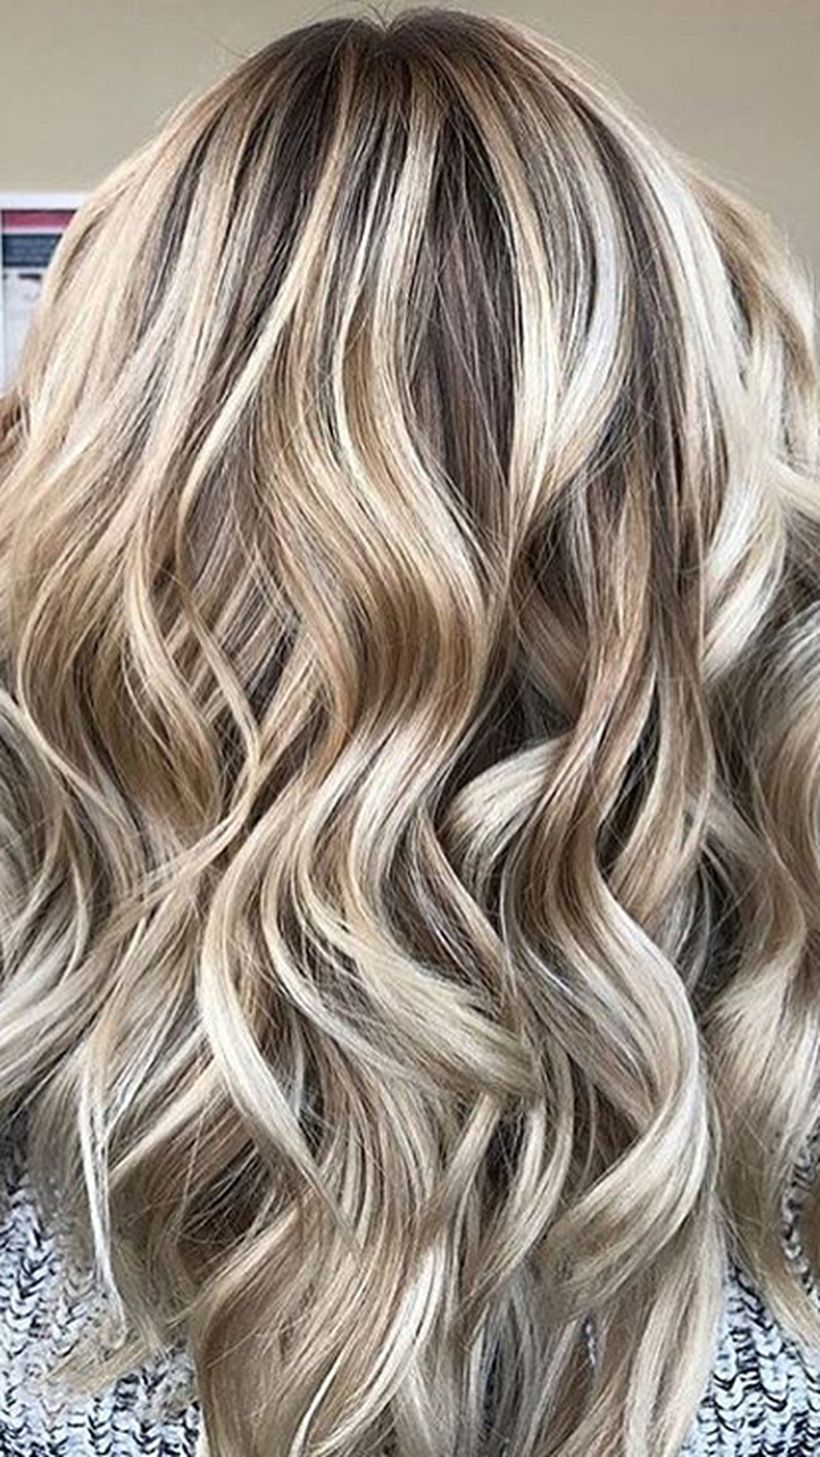 Stunning Fall Hair Colors Ideas For Brunettes 2017 53 Fashion Best